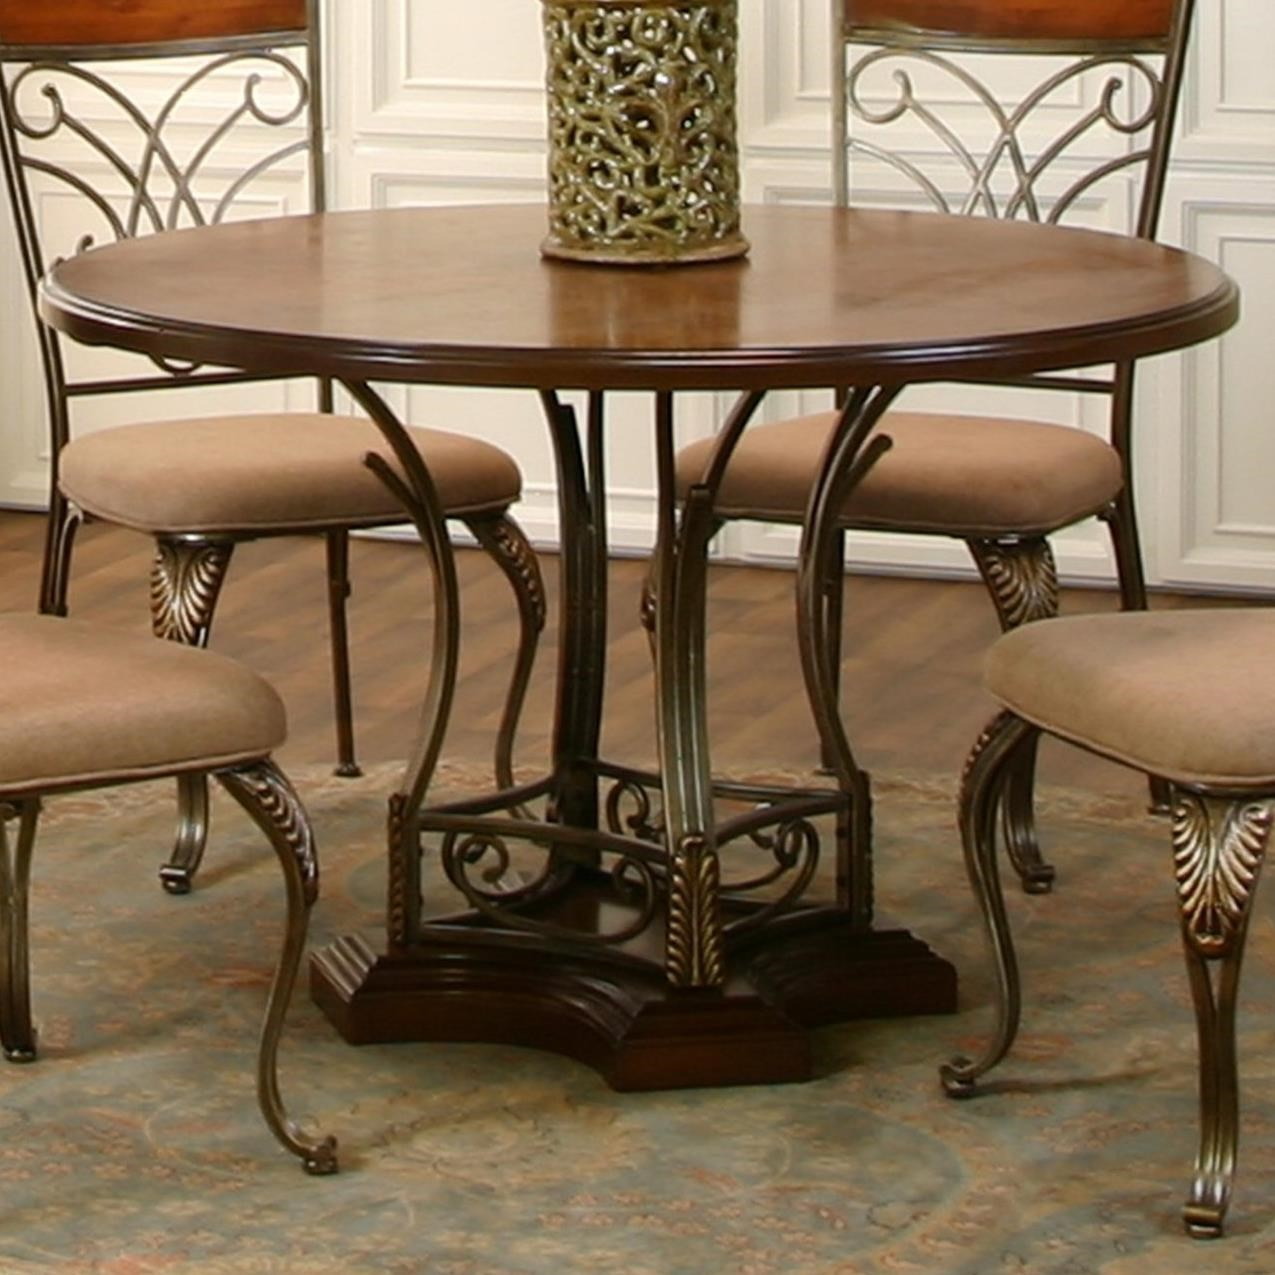 cramco inc harlow transitional 48 round metal wood table value city furniture kitchen table. Black Bedroom Furniture Sets. Home Design Ideas